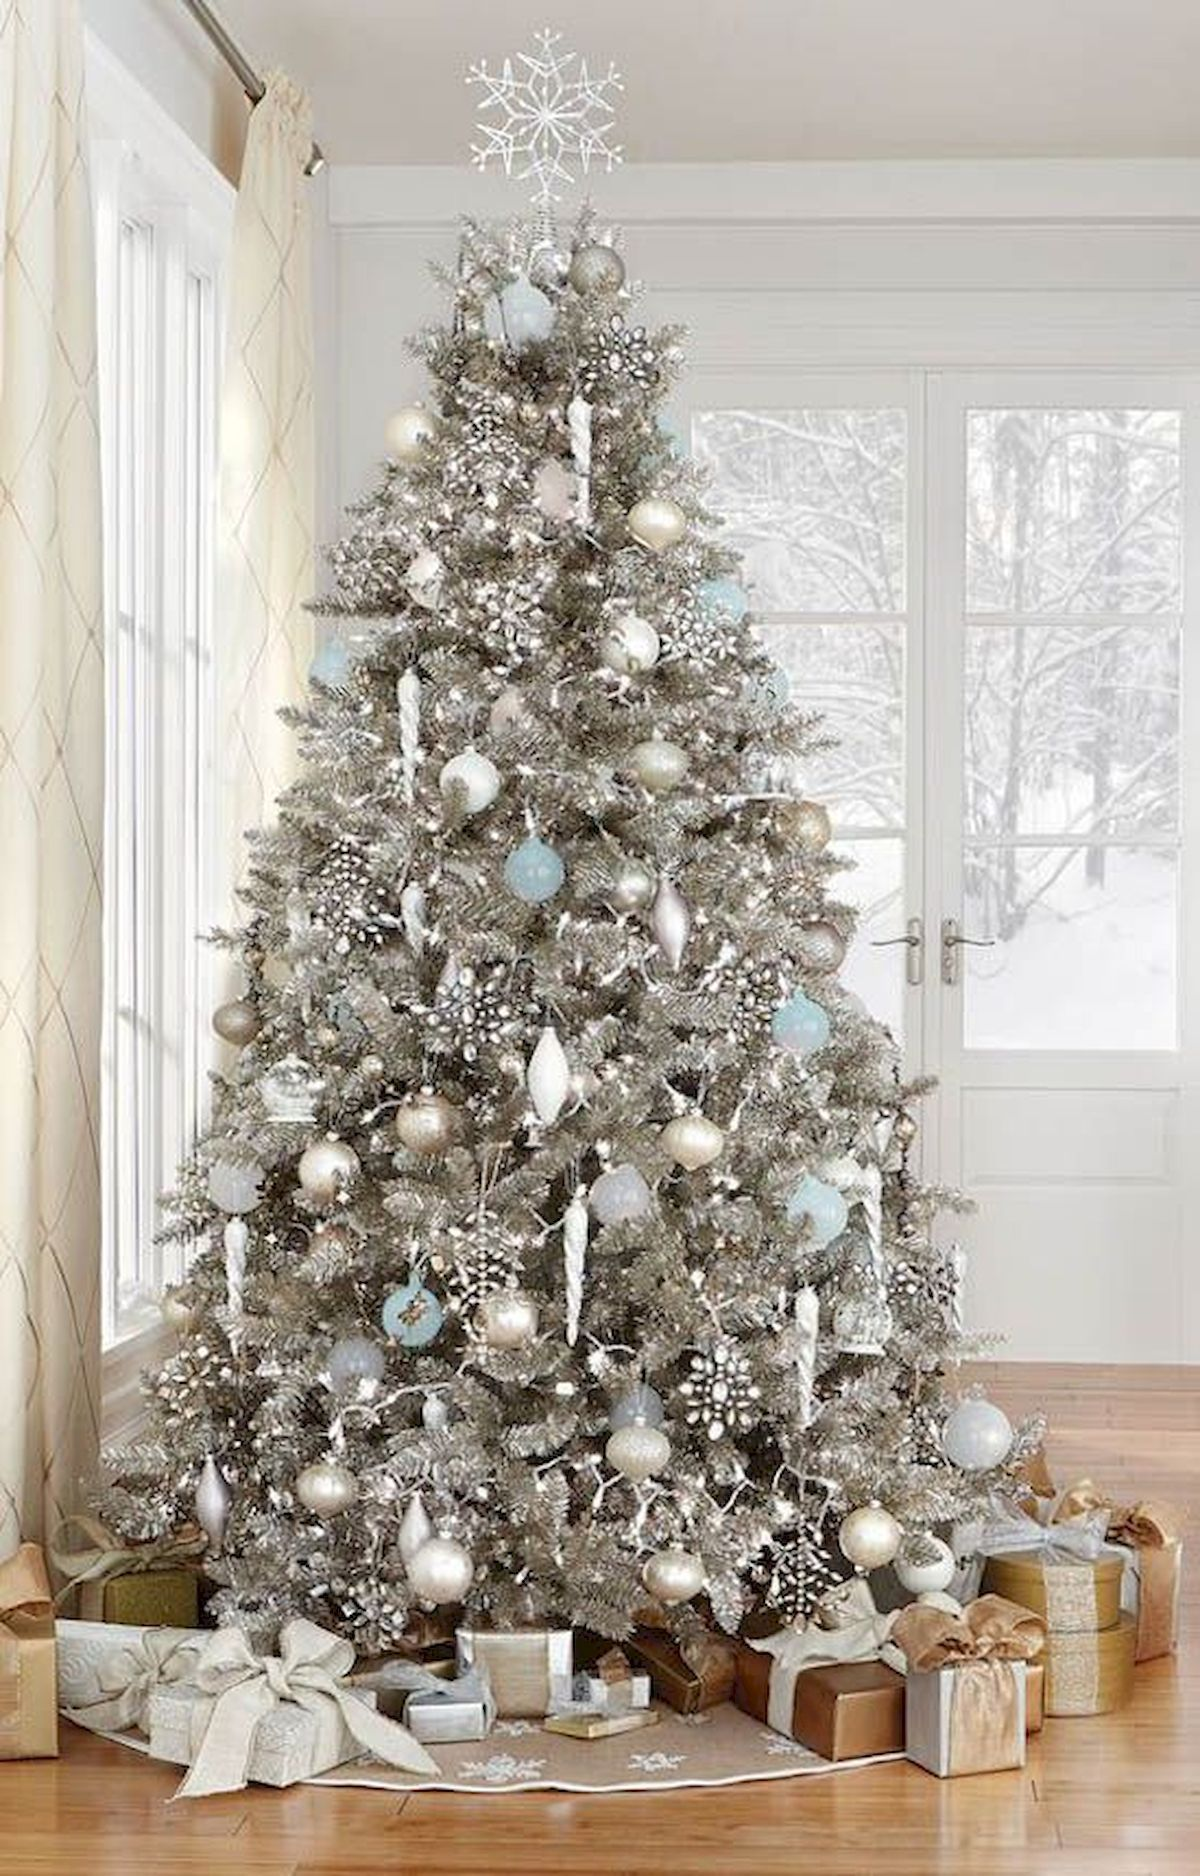 40 Elegant Christmas Tree Decorations Ideas 4 With Images Silver Christmas Tree Christmas Tree Themes